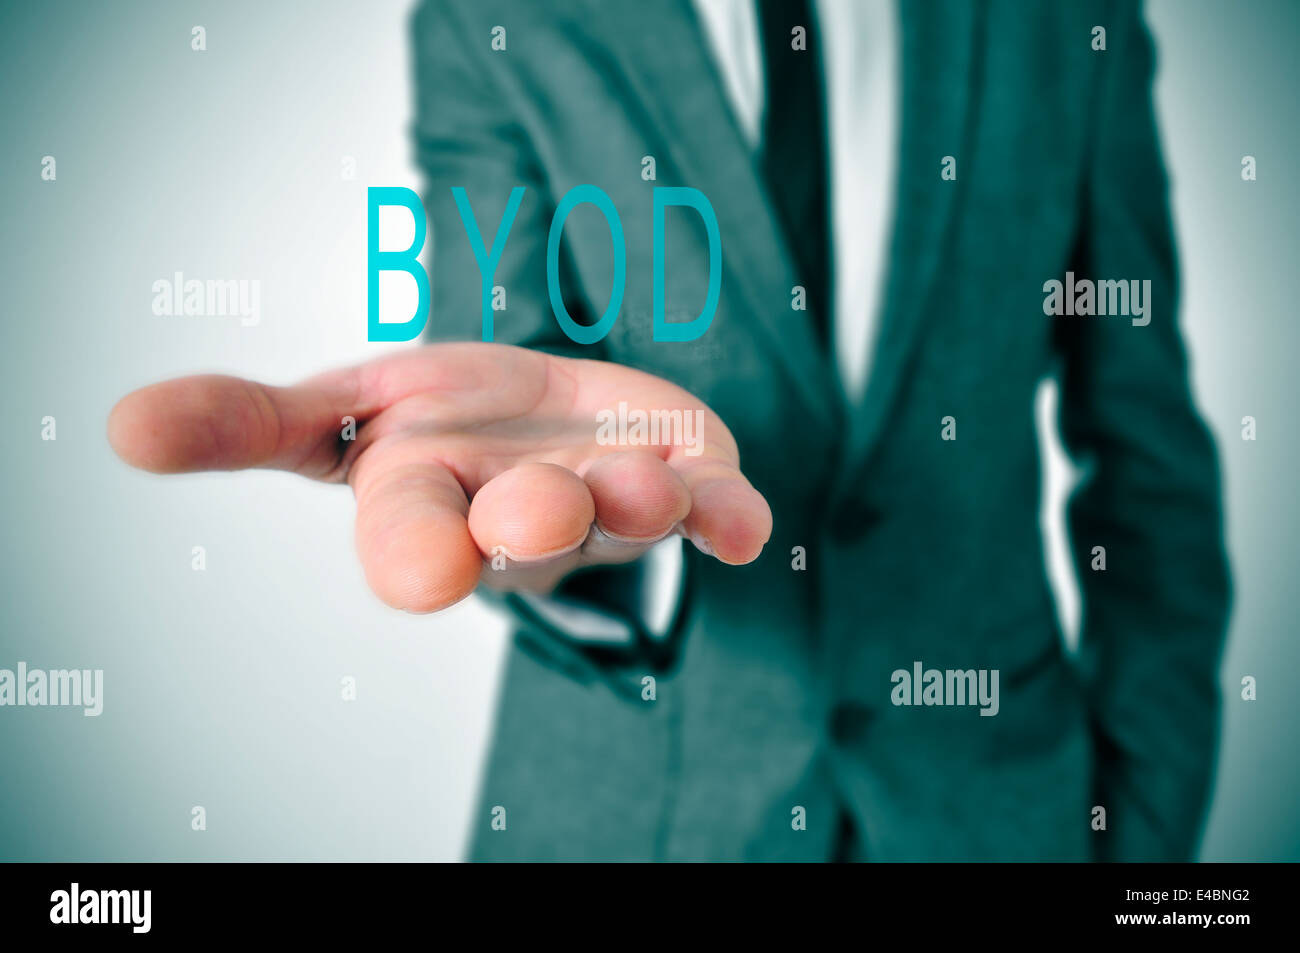 a man wearing a suit with the word BYOD, acronym for bring your own device, in his hand - Stock Image